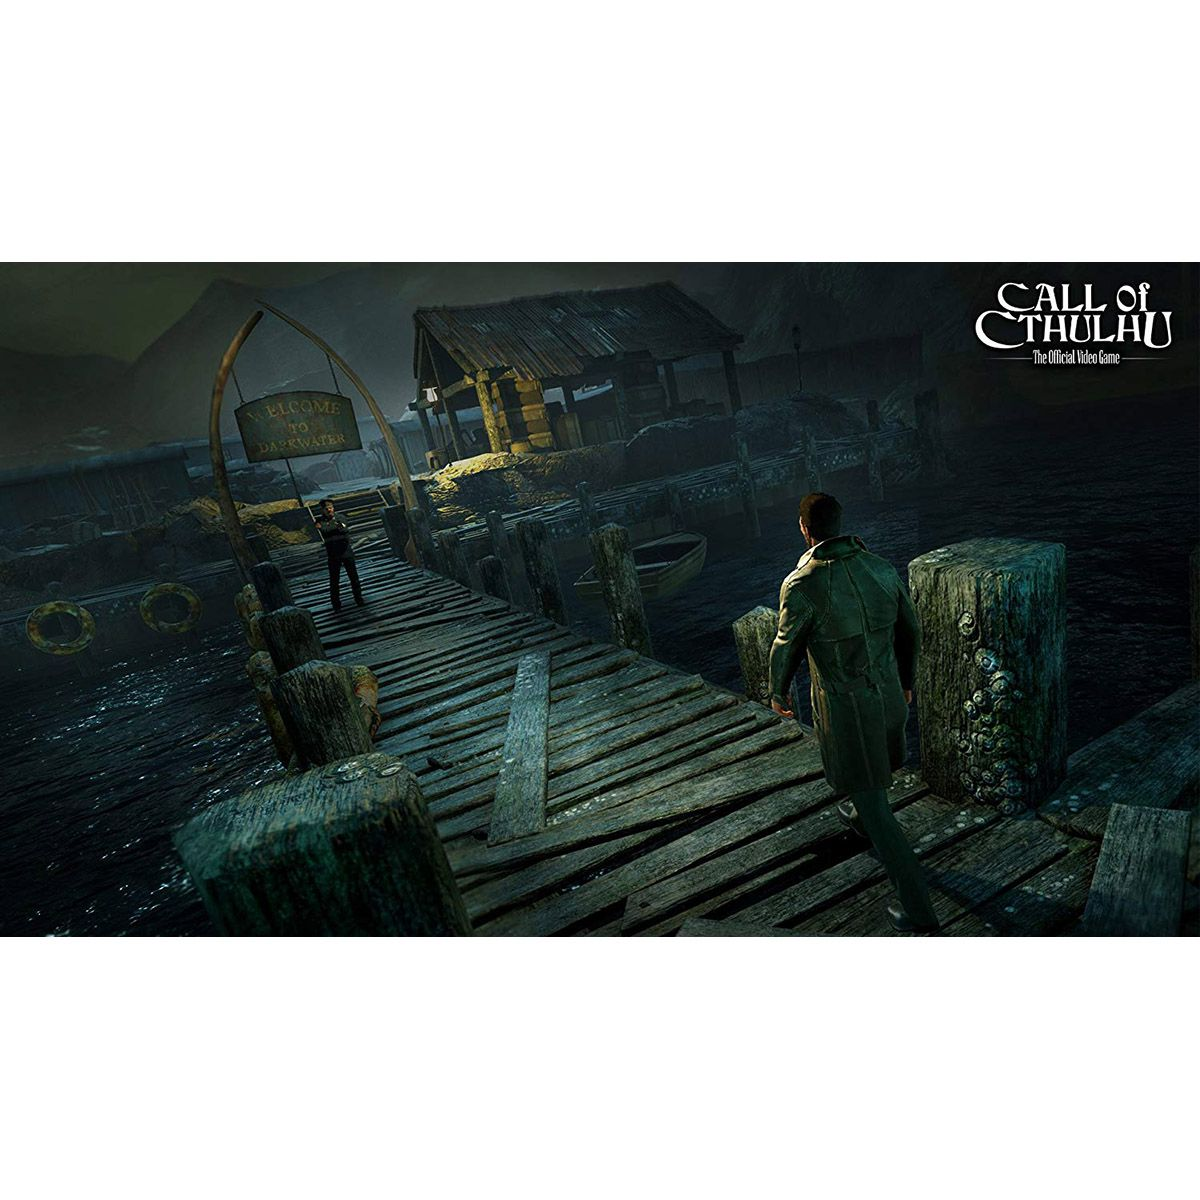 Call Of Cthulhu - PS4